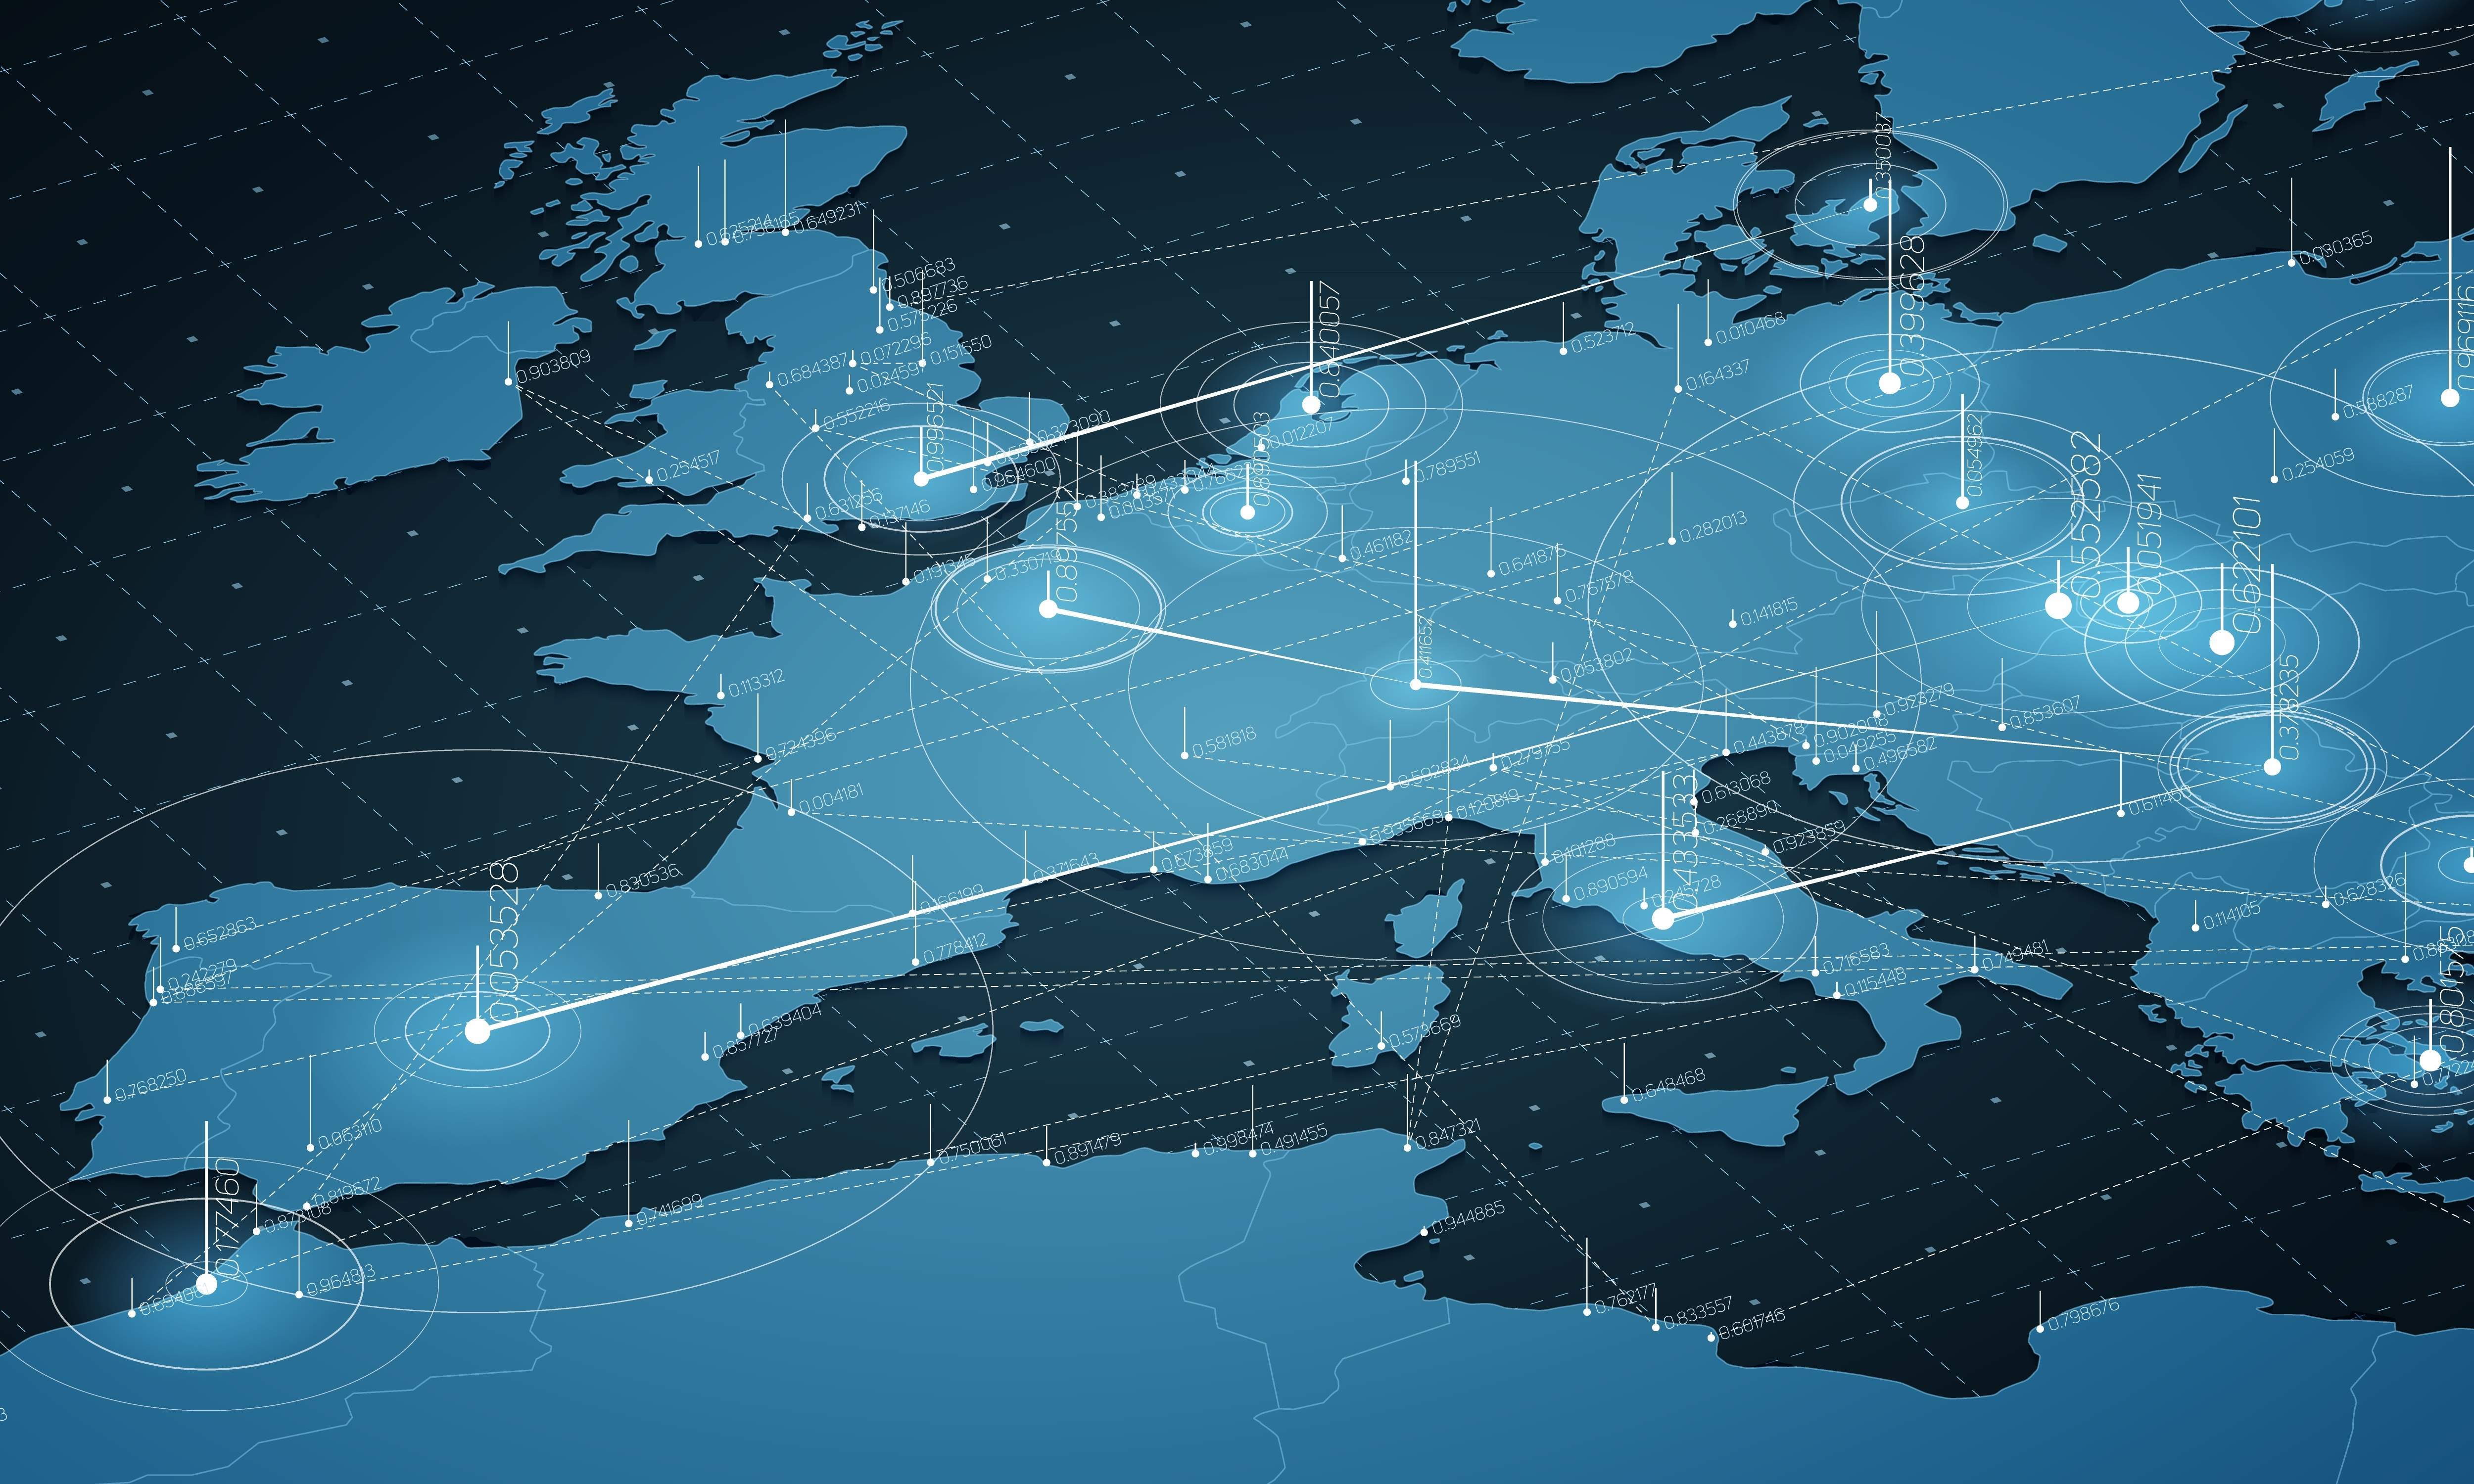 There are huge differences in how much mobile data European countries use